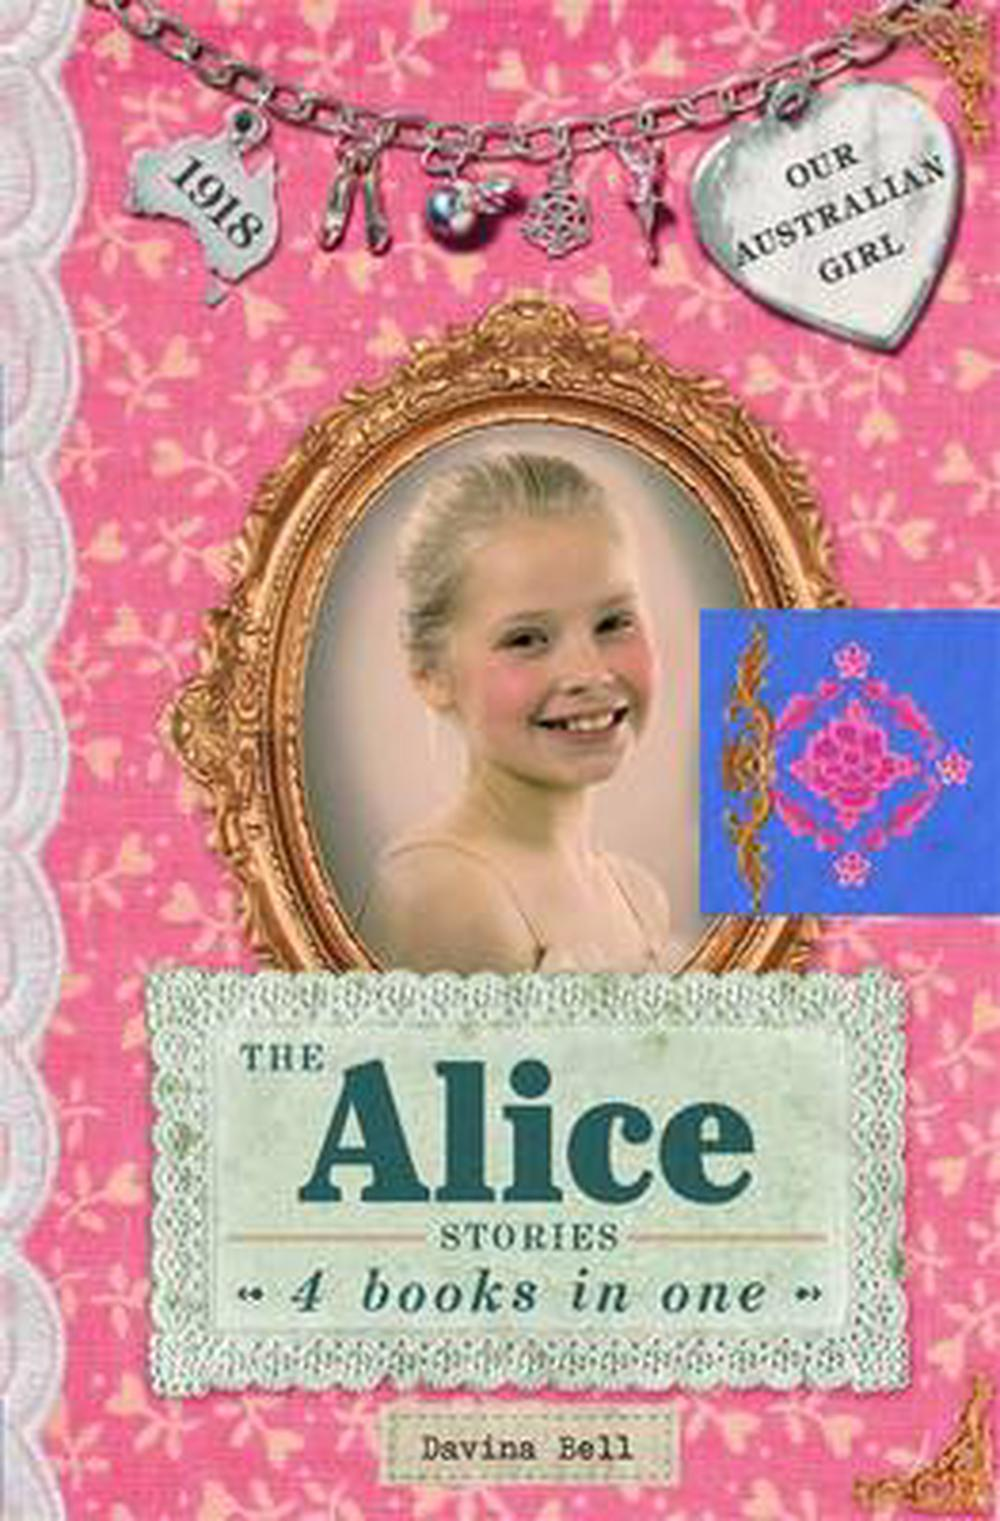 The Alice Stories